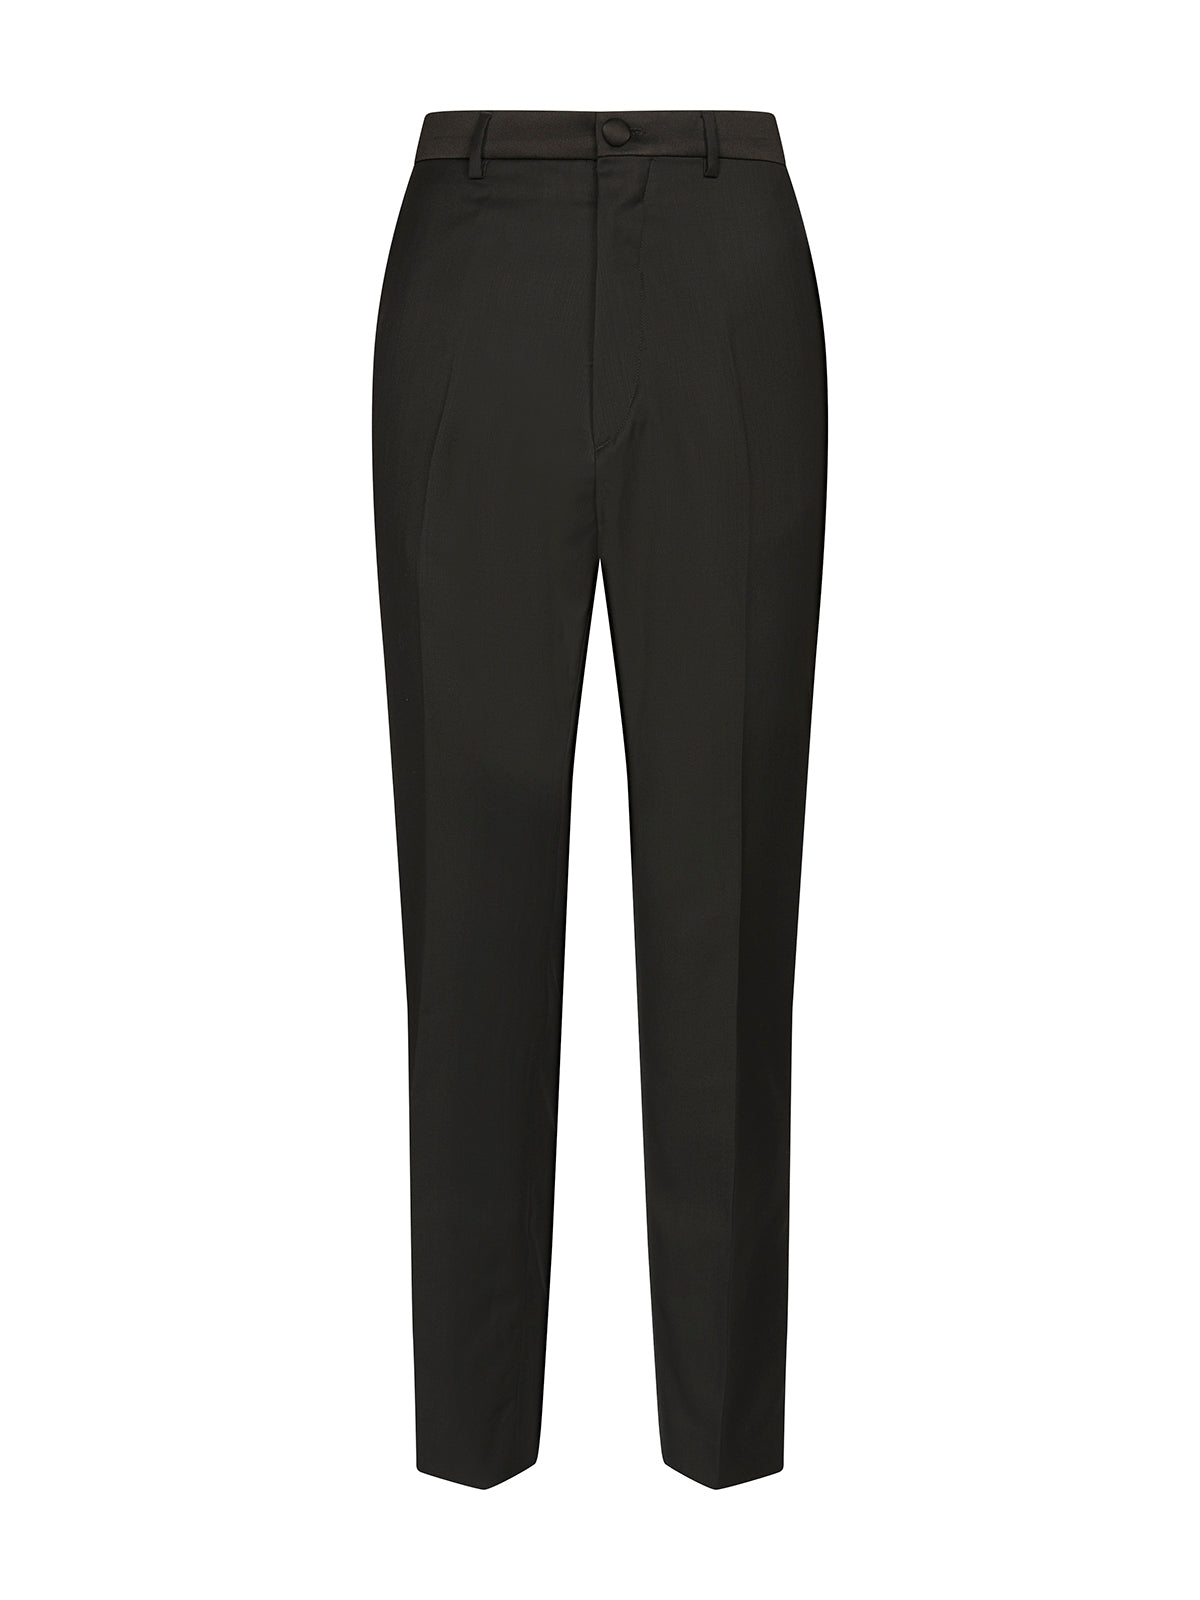 Smoker prince trousers in black